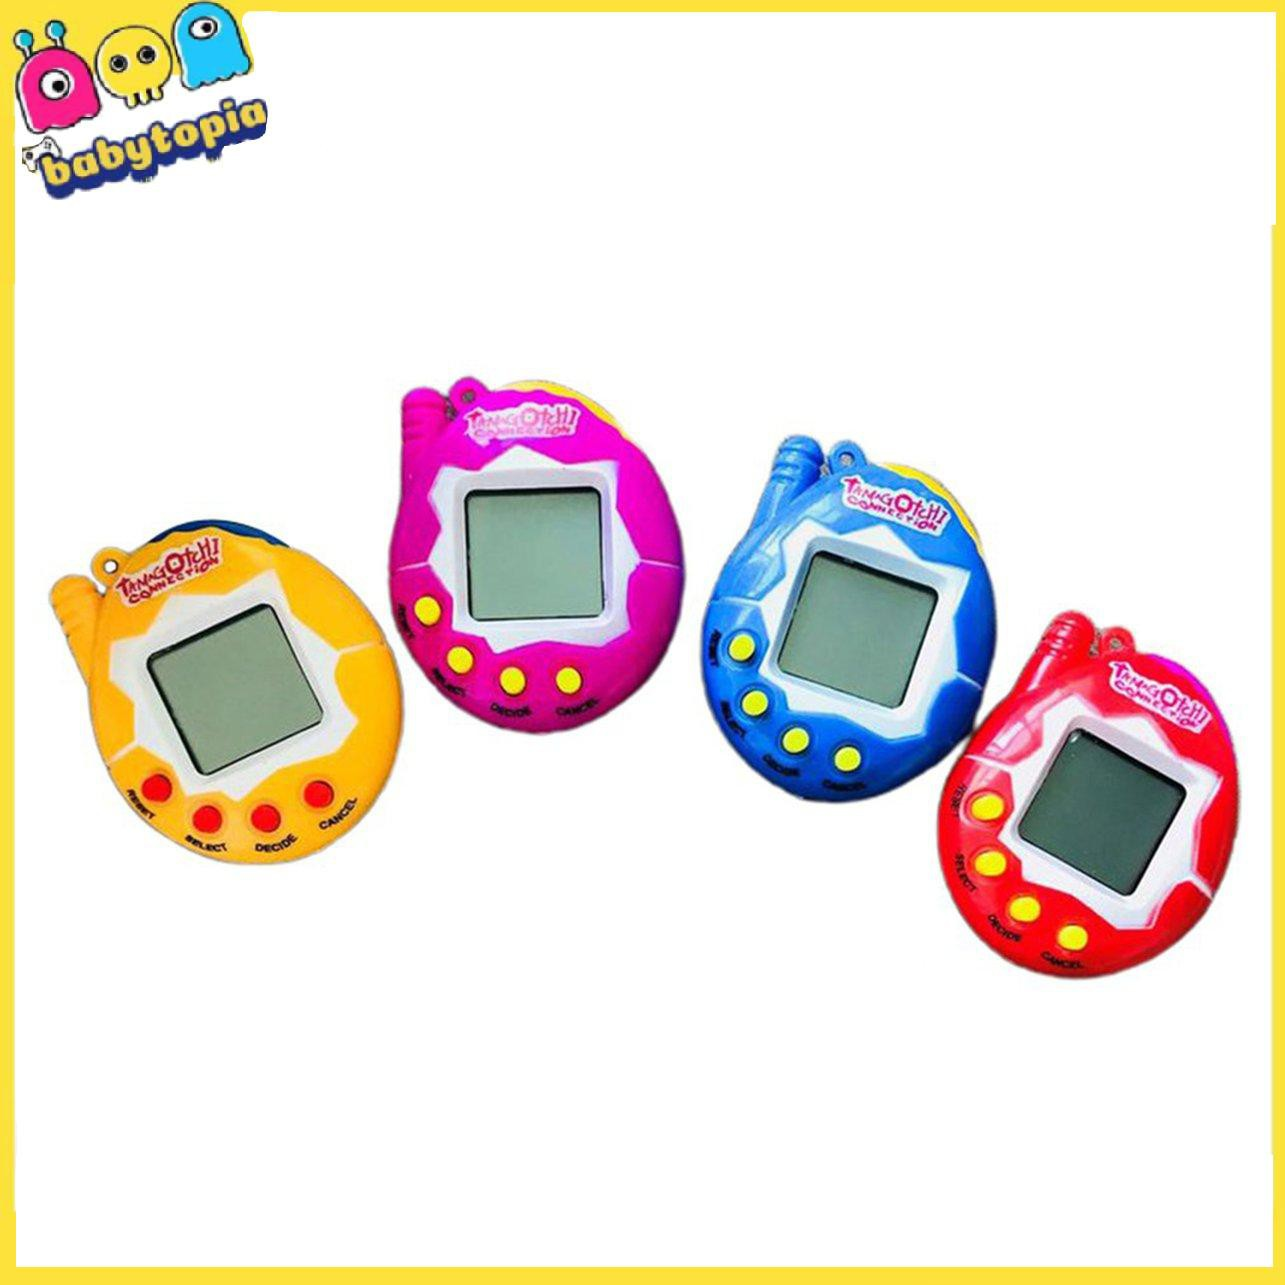 Classic Electronic Pet Toy Virtual Network Toy Pet Development Game Machine